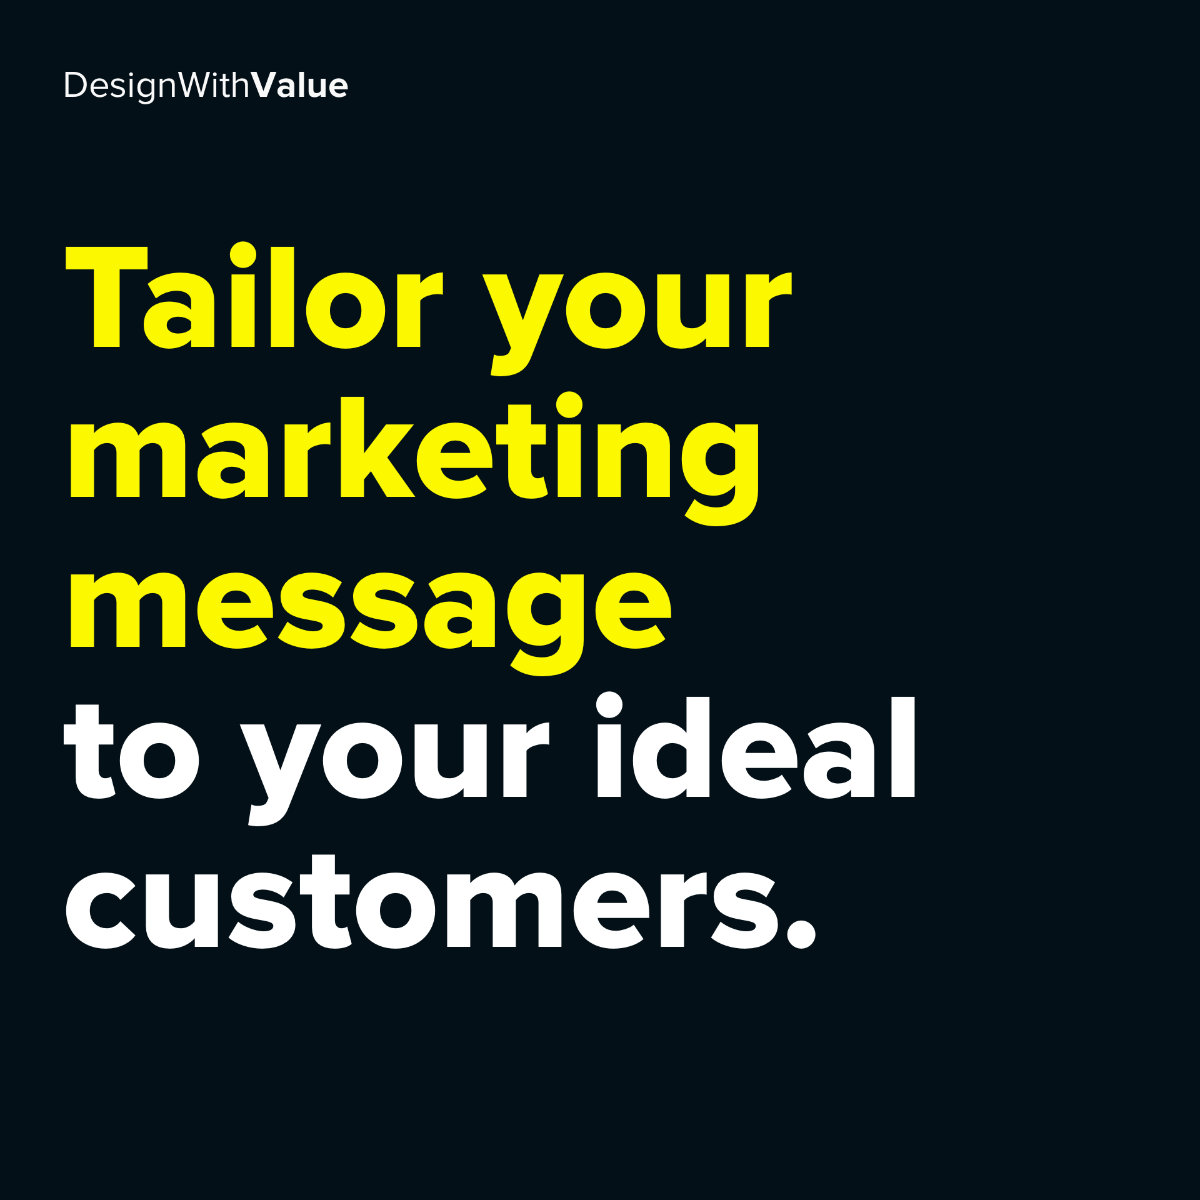 Tailor your marketing message to your ideal customers